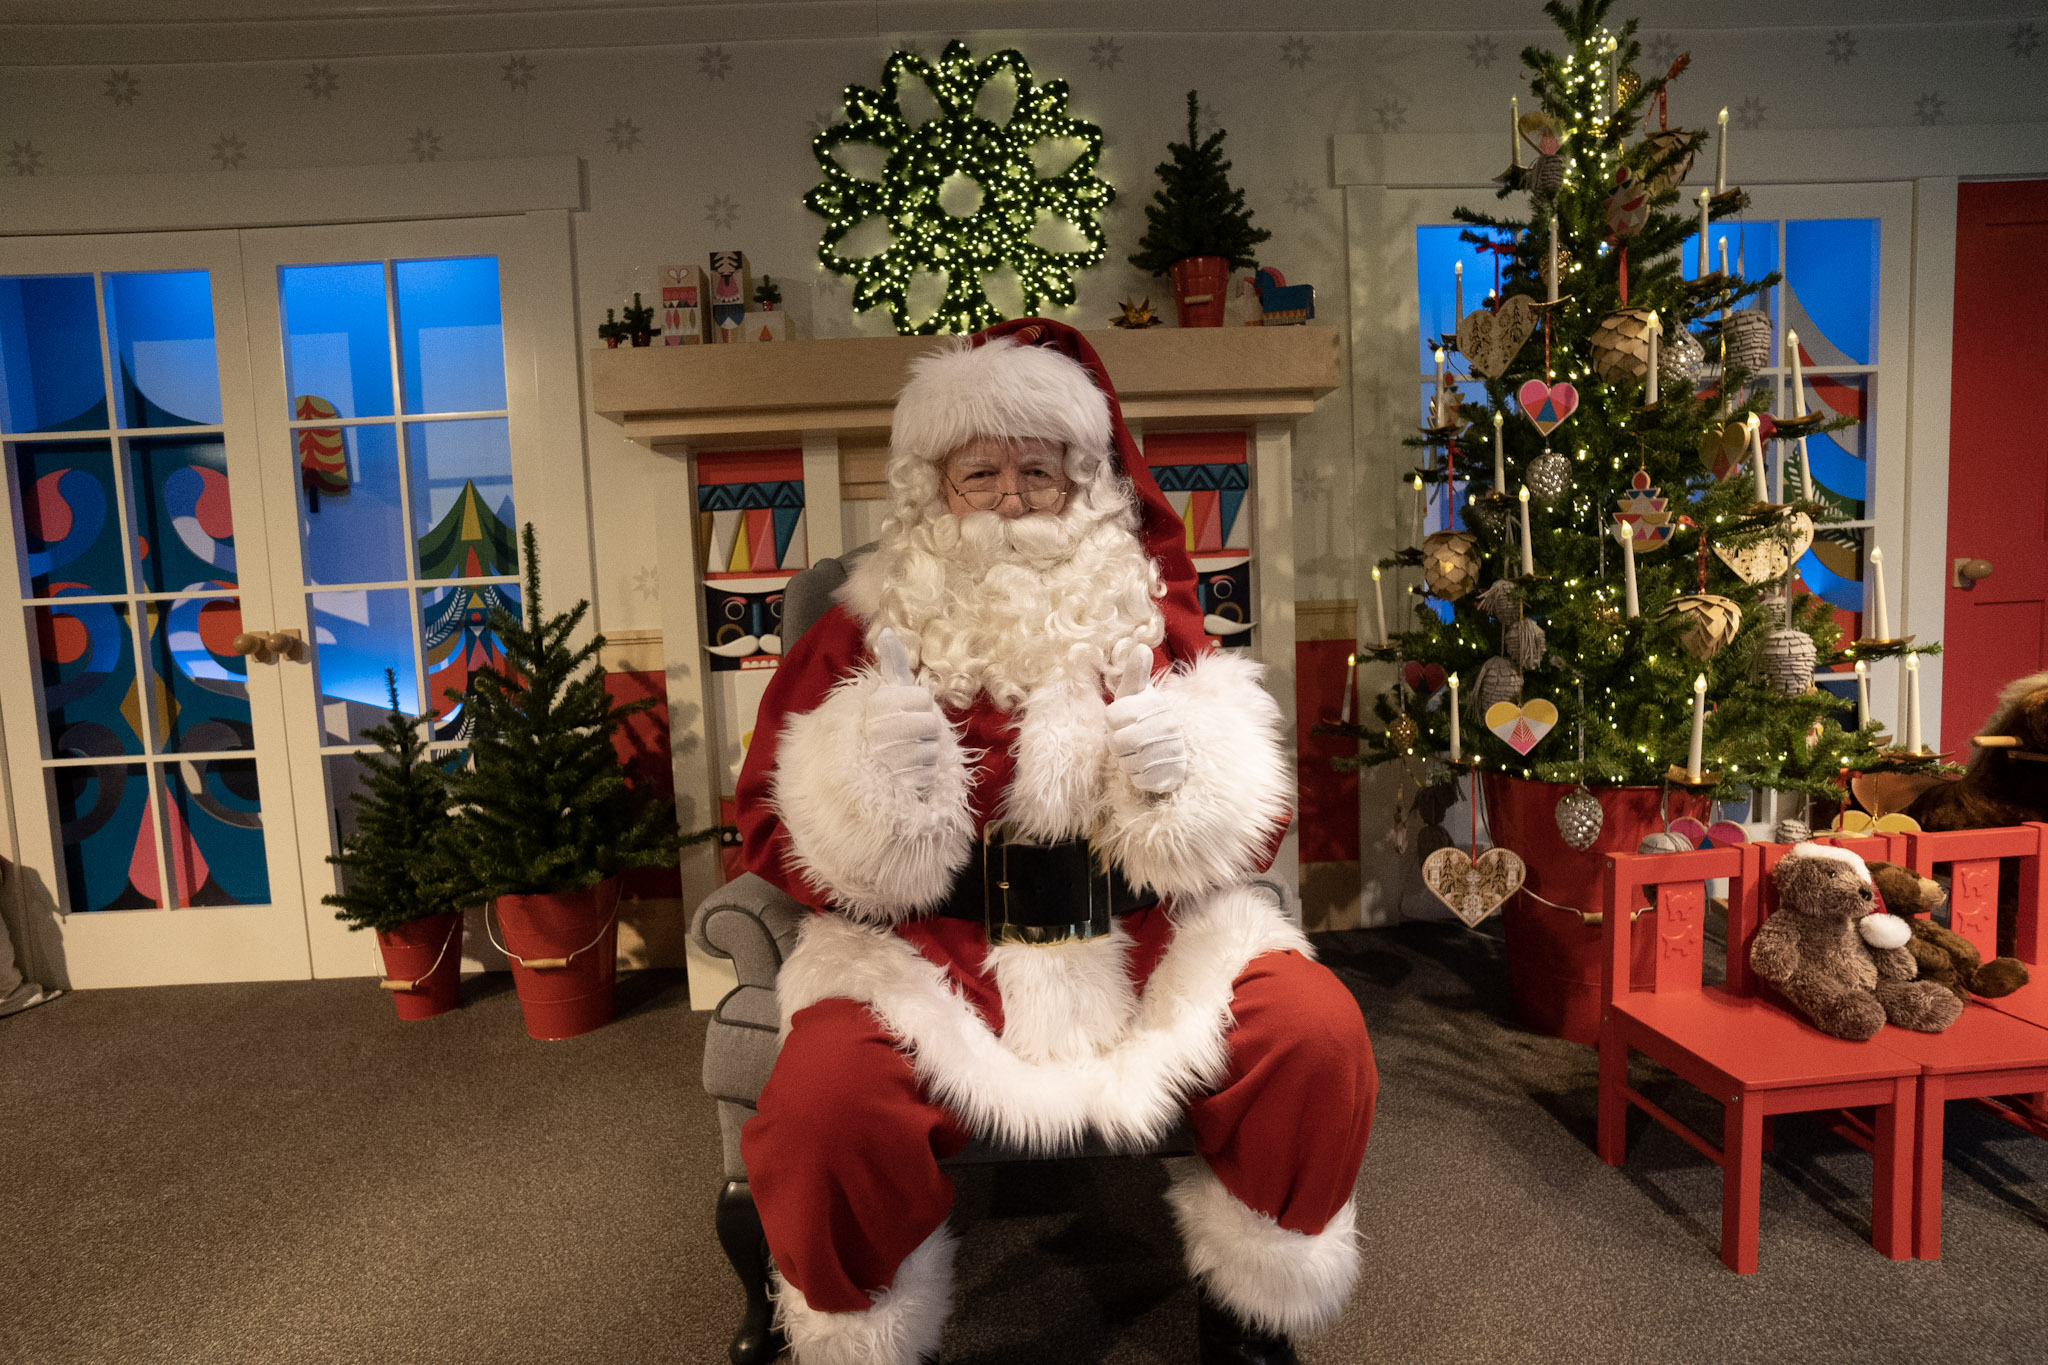 Visiting Santa and sharing your holiday wish list a fun tradition for many people. Refined got to go behind the scenes with Santa as he got ready to greet folks in his special spot in the window on 6th Avenue in the Nordstrom Downtown Seattle store. (Credit: Nordstrom)